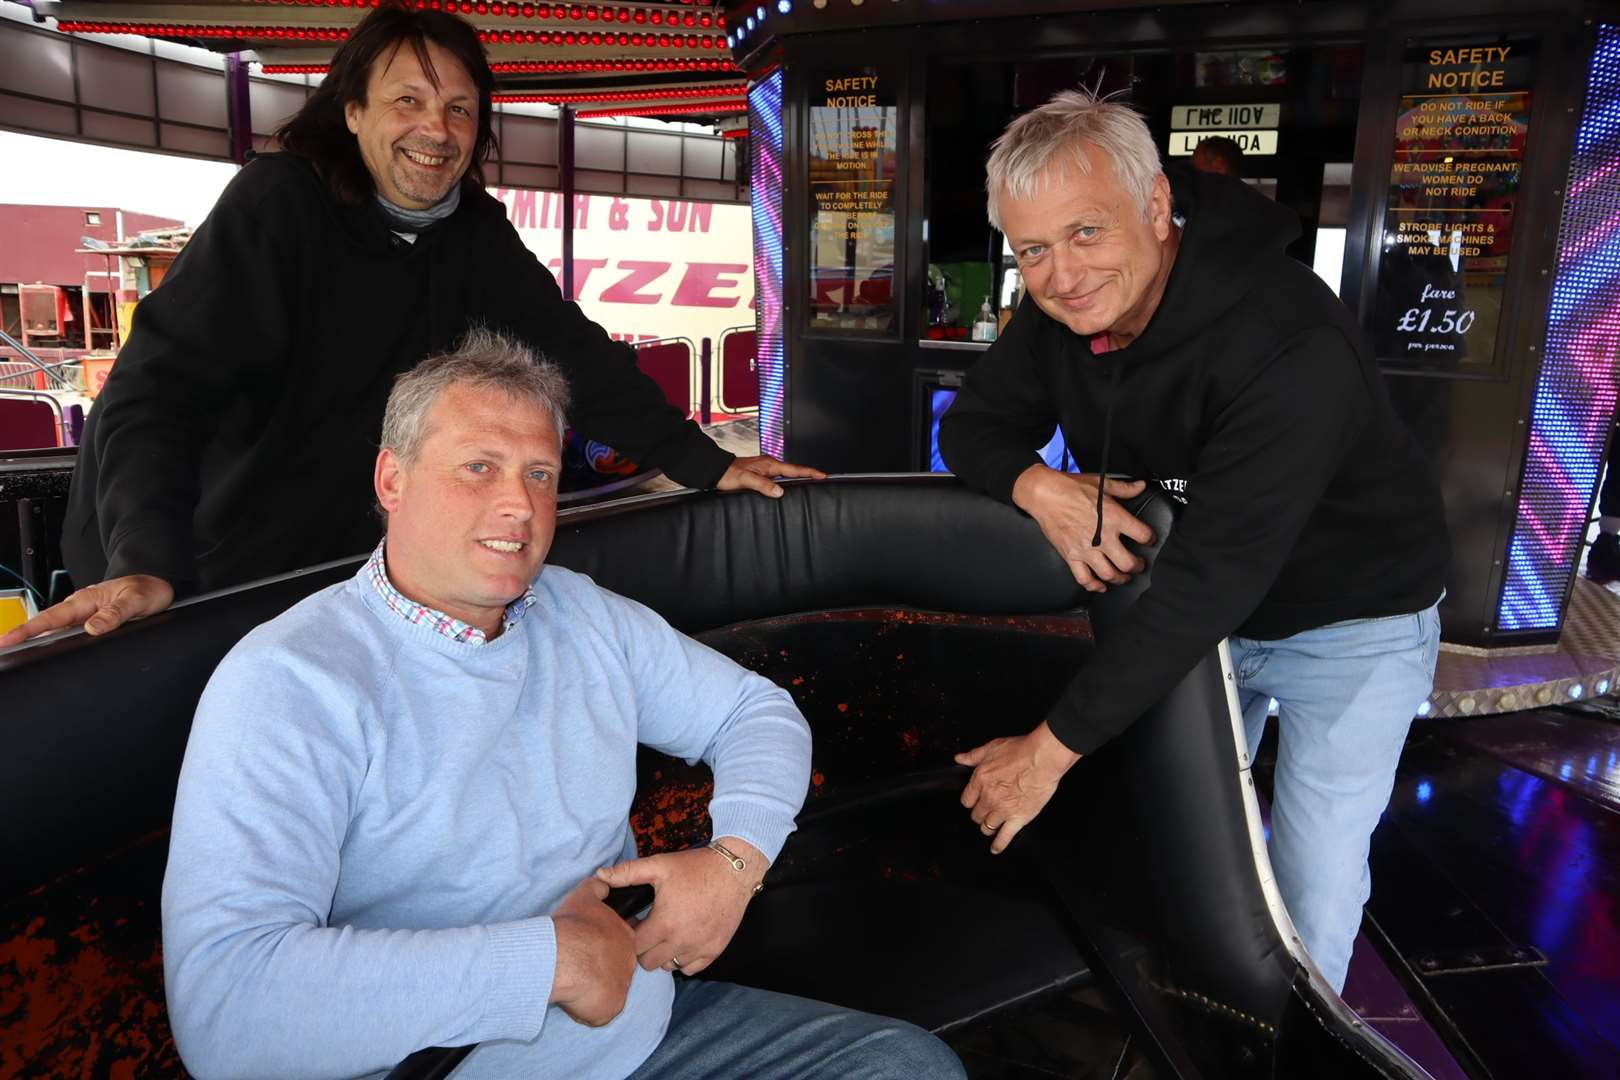 Cllrs Mike Baldock, left, and Richard Palmer give funfair boss Carlos Christian a hand on the waltzer at Smith's funfair at Barton's Point, Sheerness